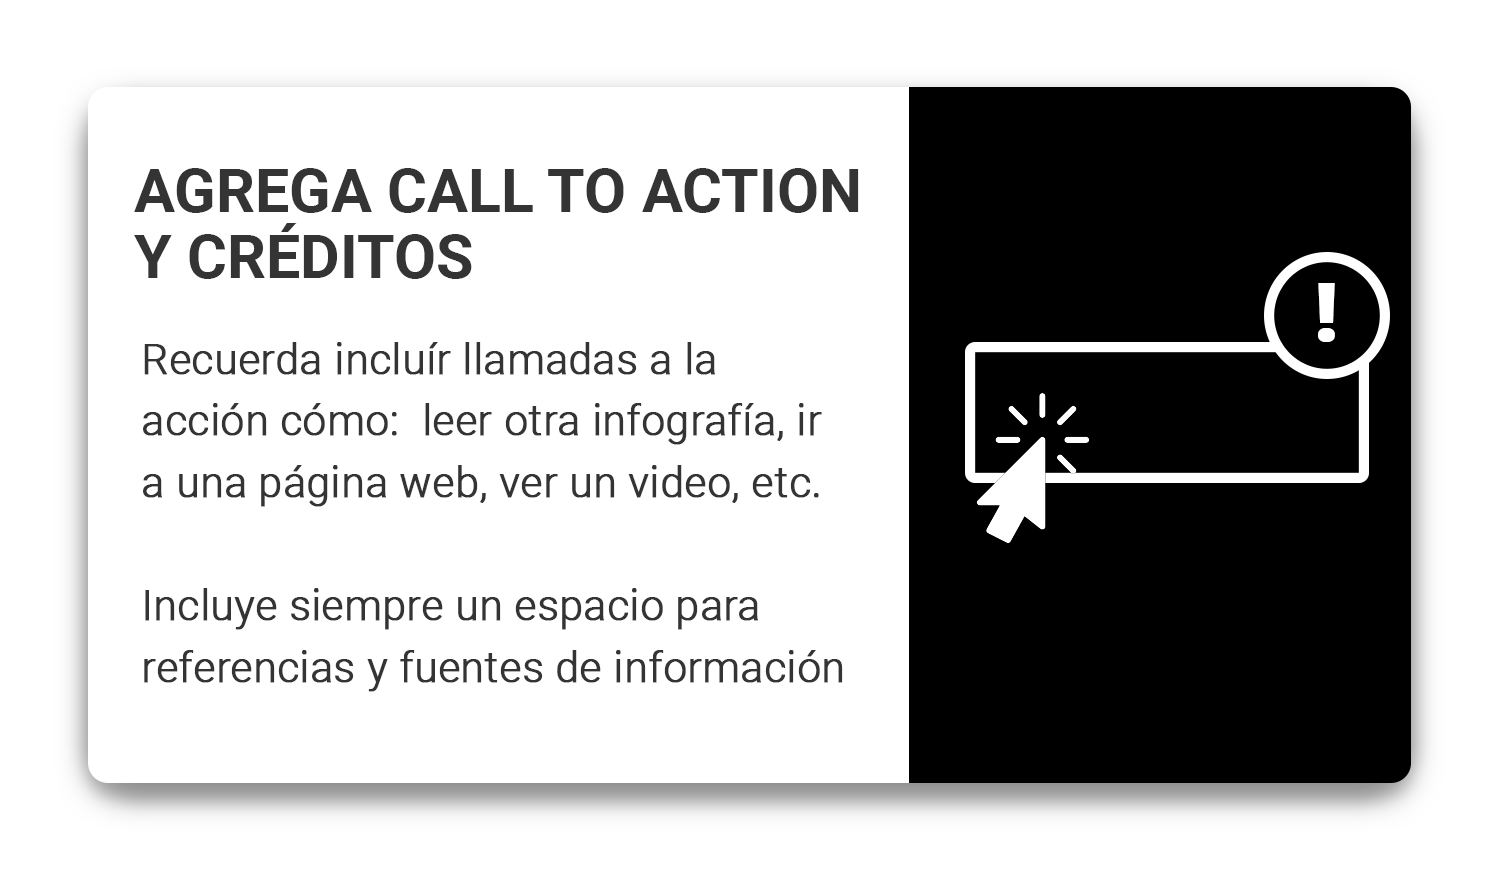 agregar-call-to-actions-creditos